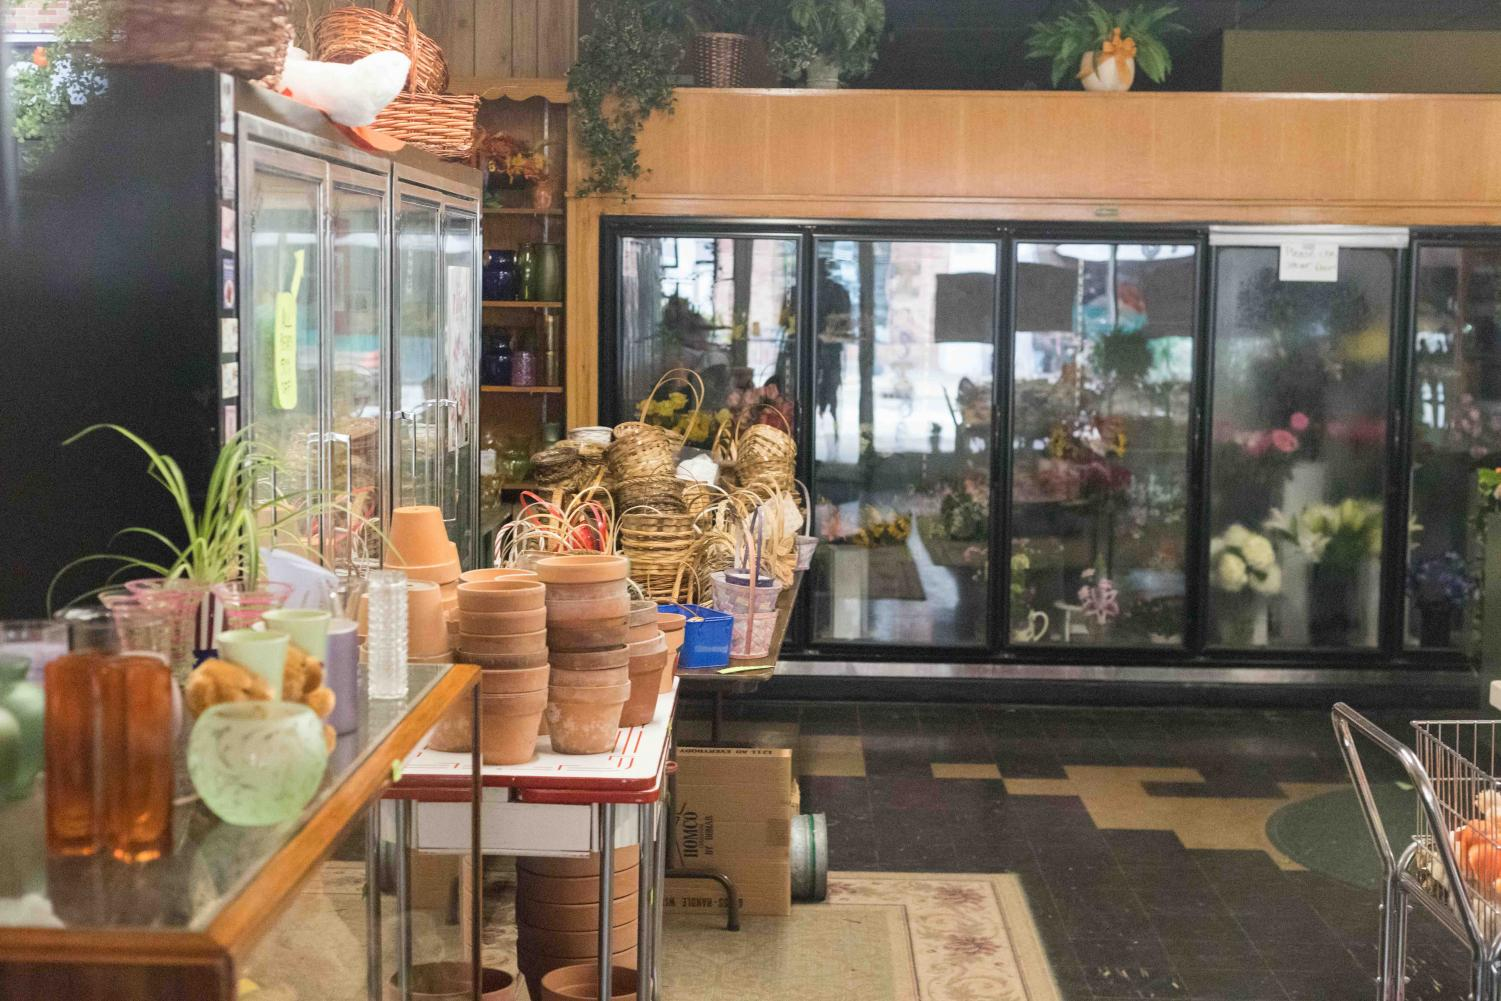 The interior of Campus Florist, located at 609 E. Green St. in Champaign. Campus Florist is closing in late October.